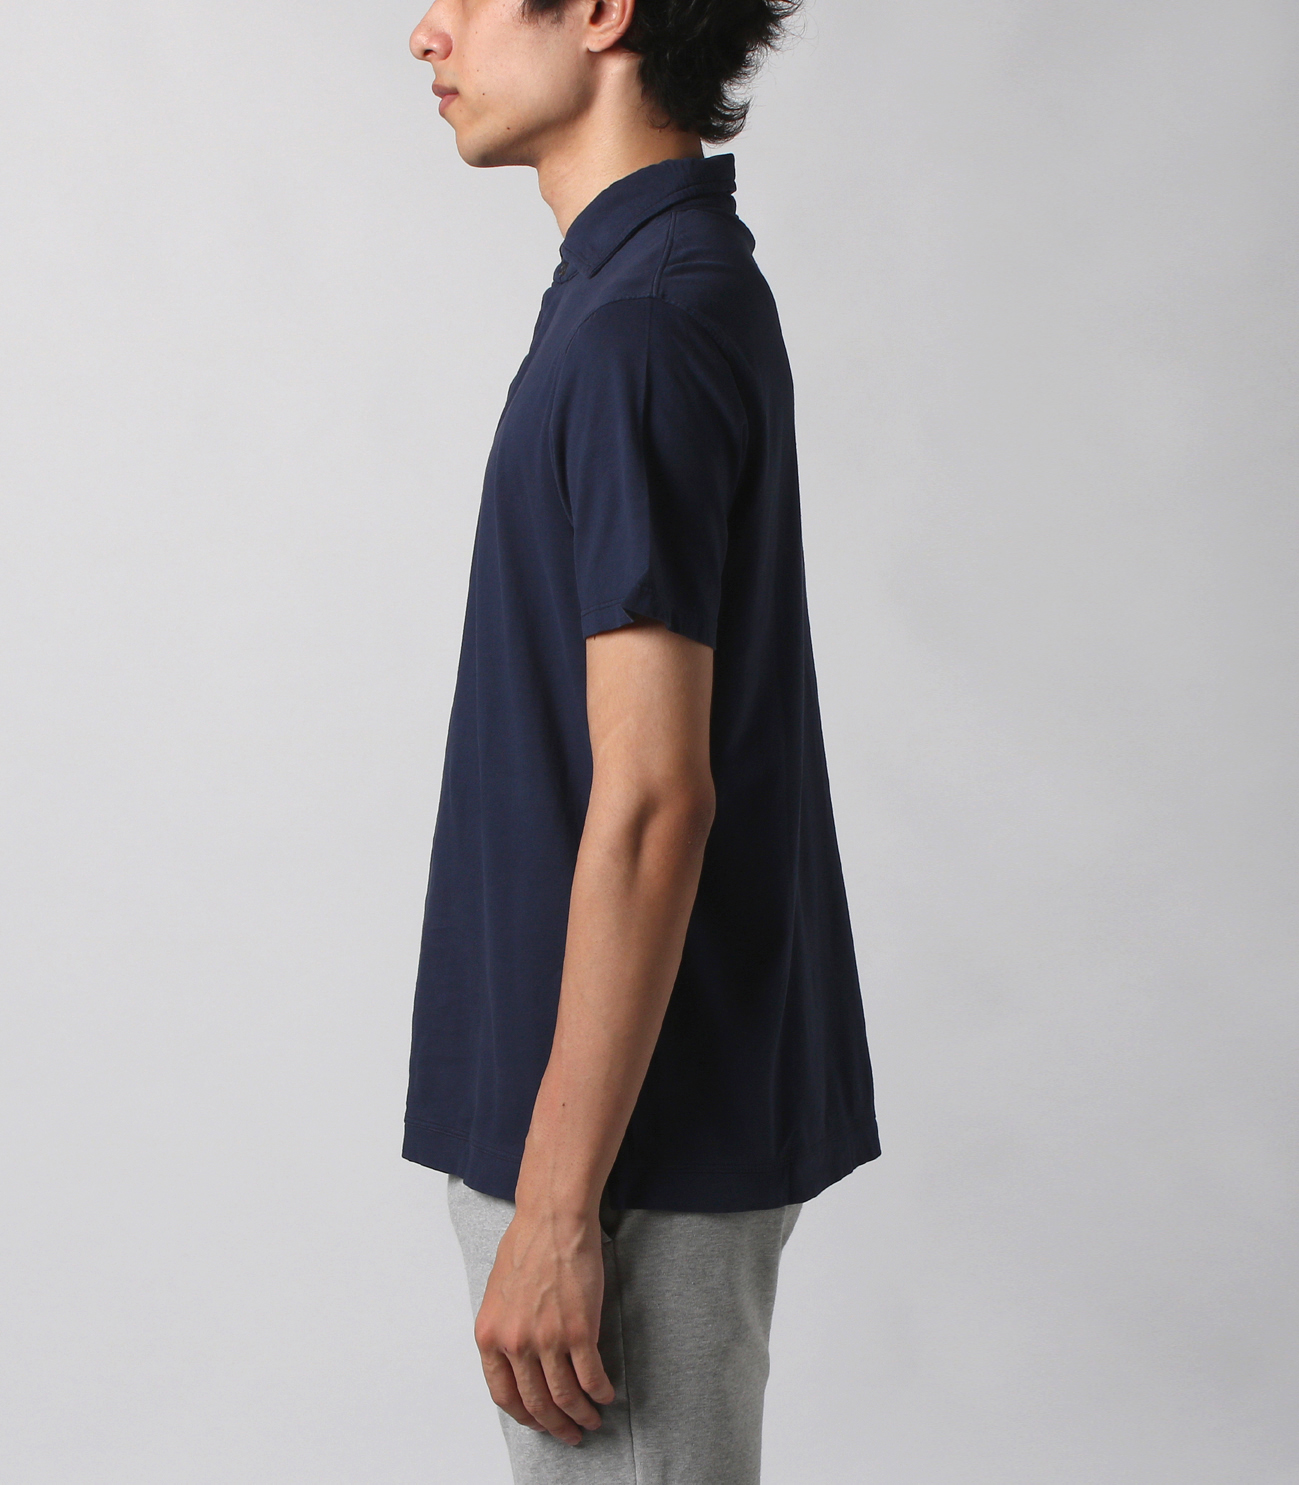 George (new basic line) sanded jersey 詳細画像 GRANITE 3